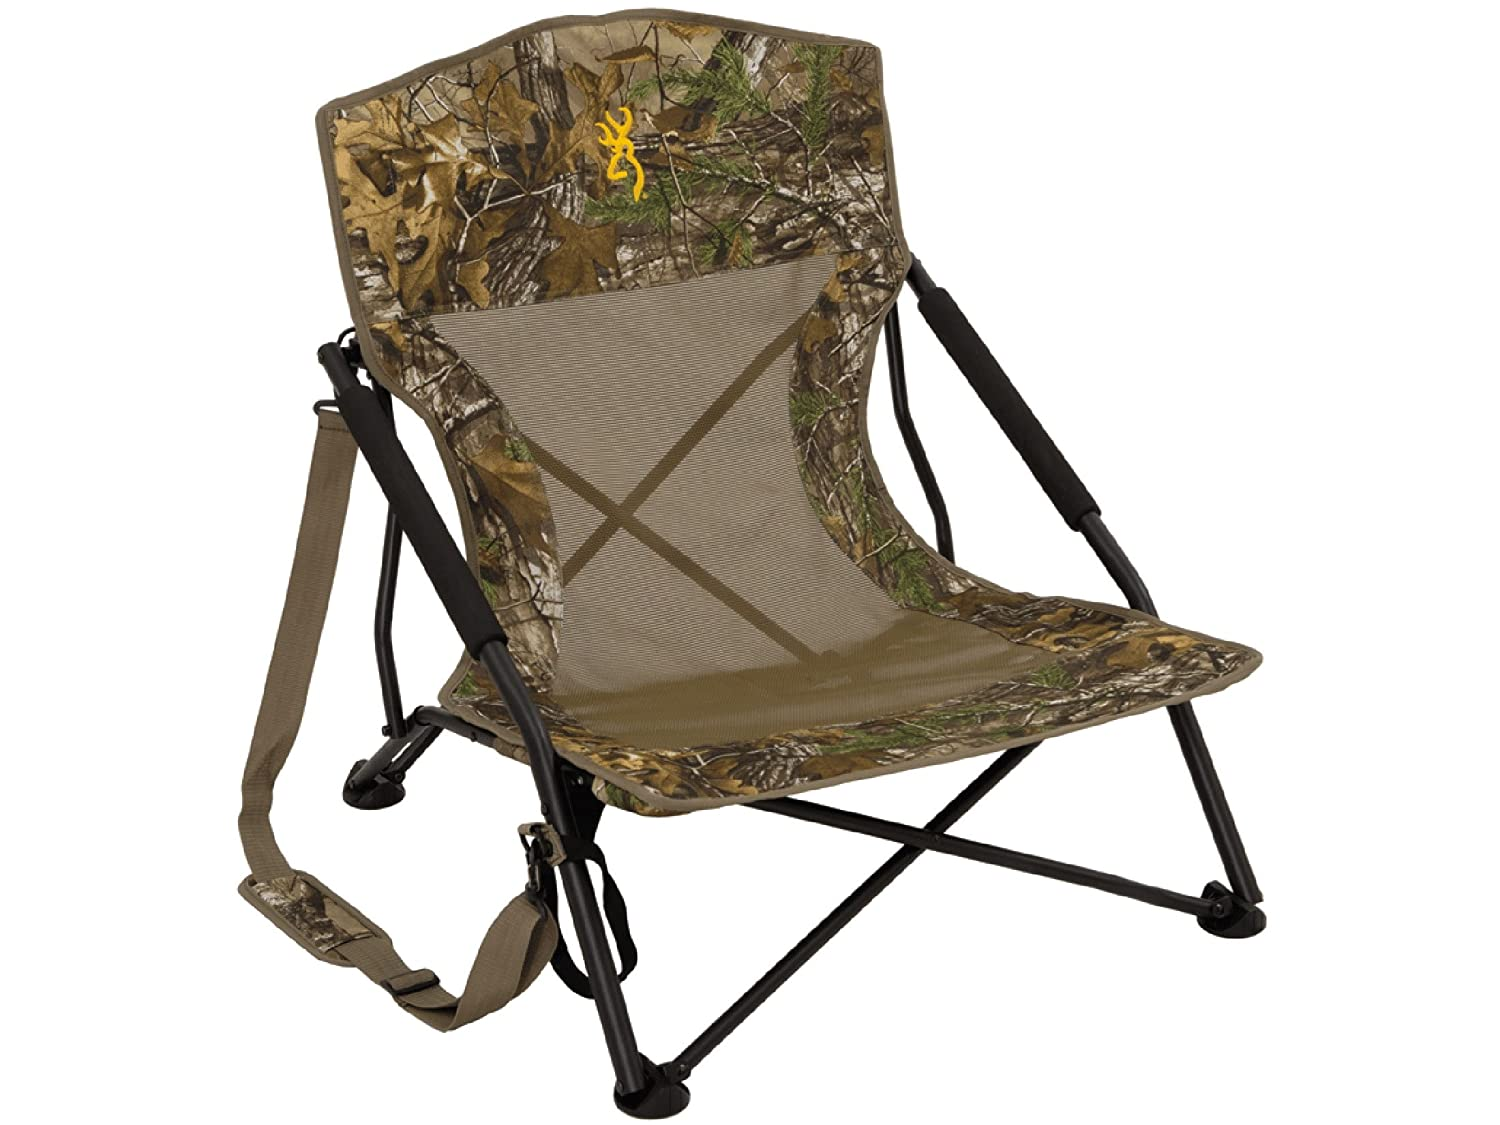 Astonishing Amazon Com Browning Strutter Low Profile Chair Realtree Inzonedesignstudio Interior Chair Design Inzonedesignstudiocom